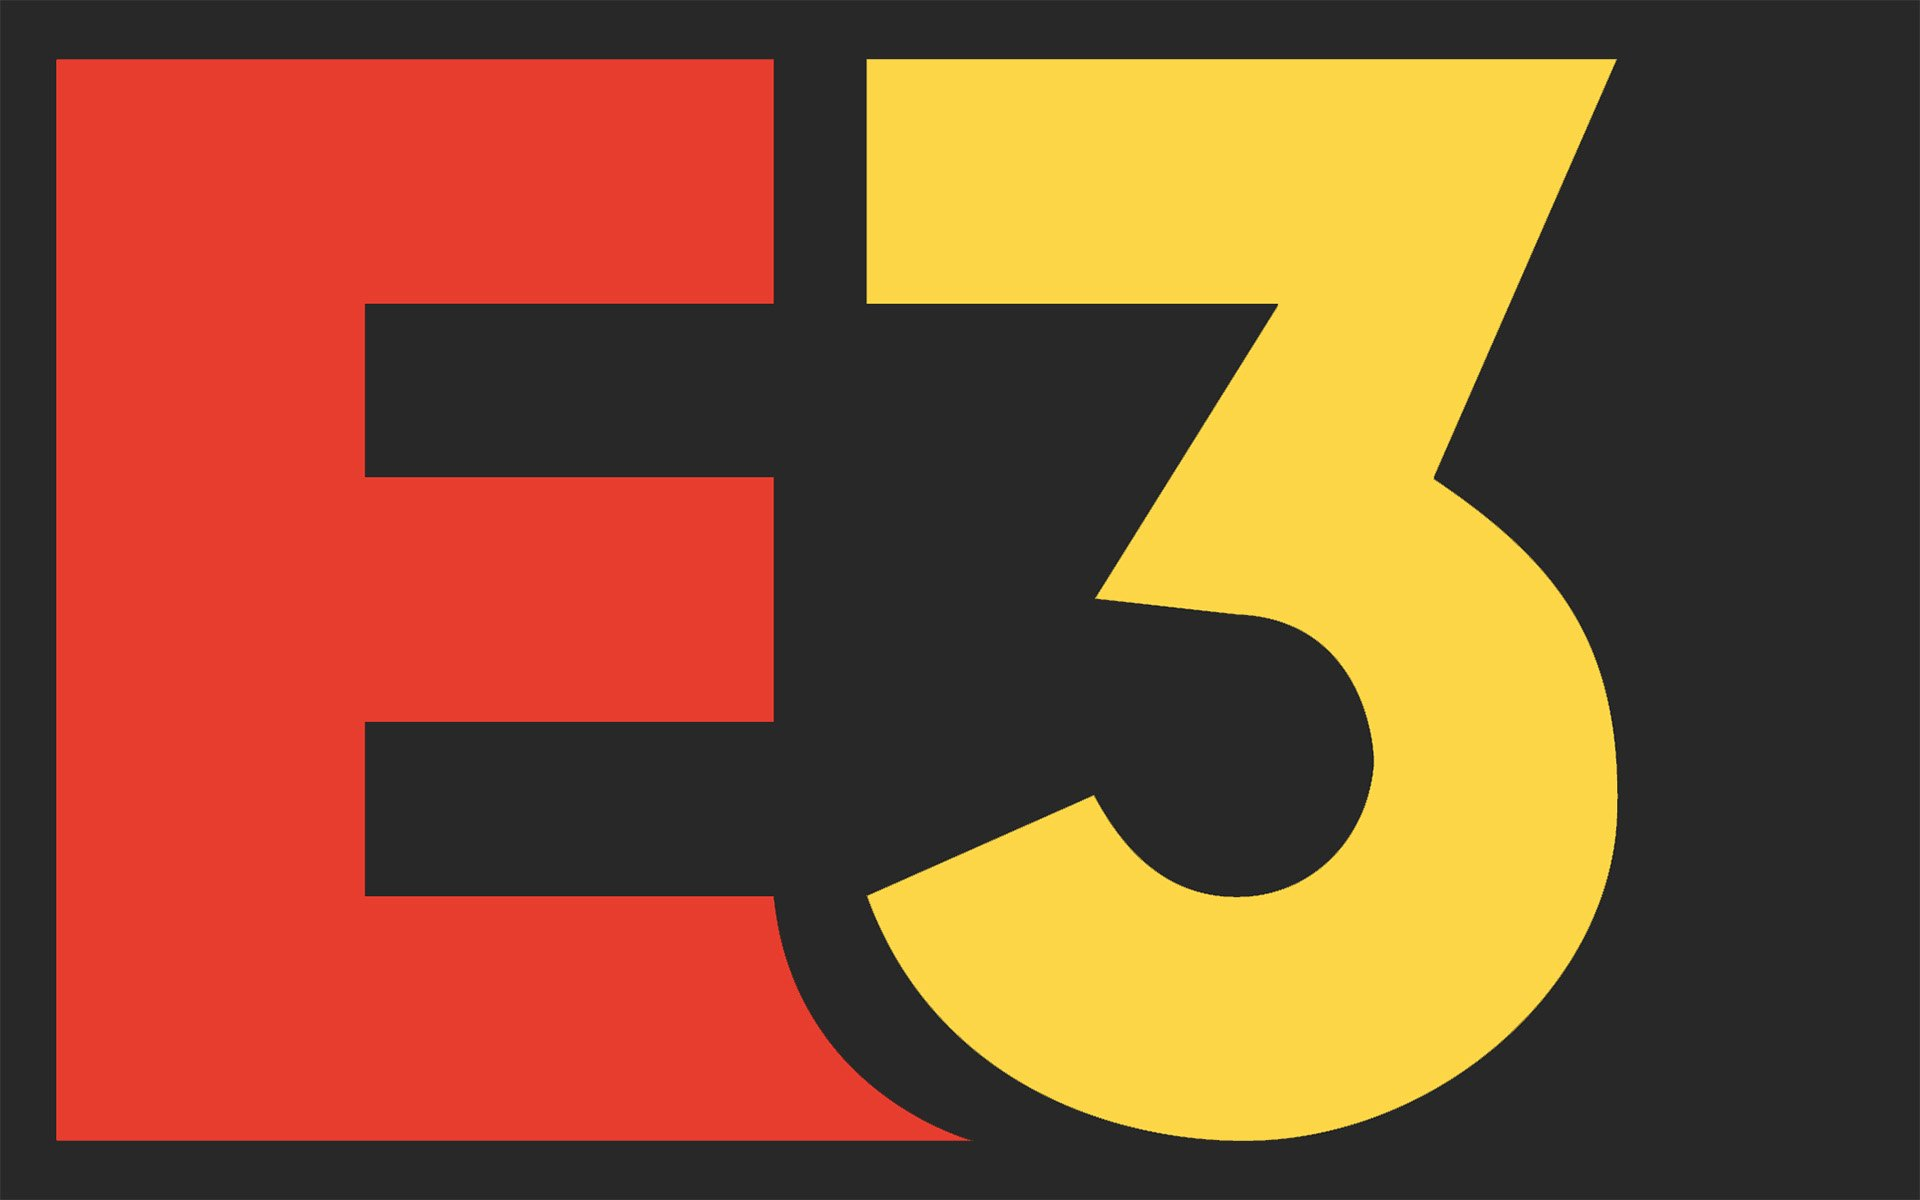 E3 2020 Schedule E3 2020 dates announced for June next year | Shacknews